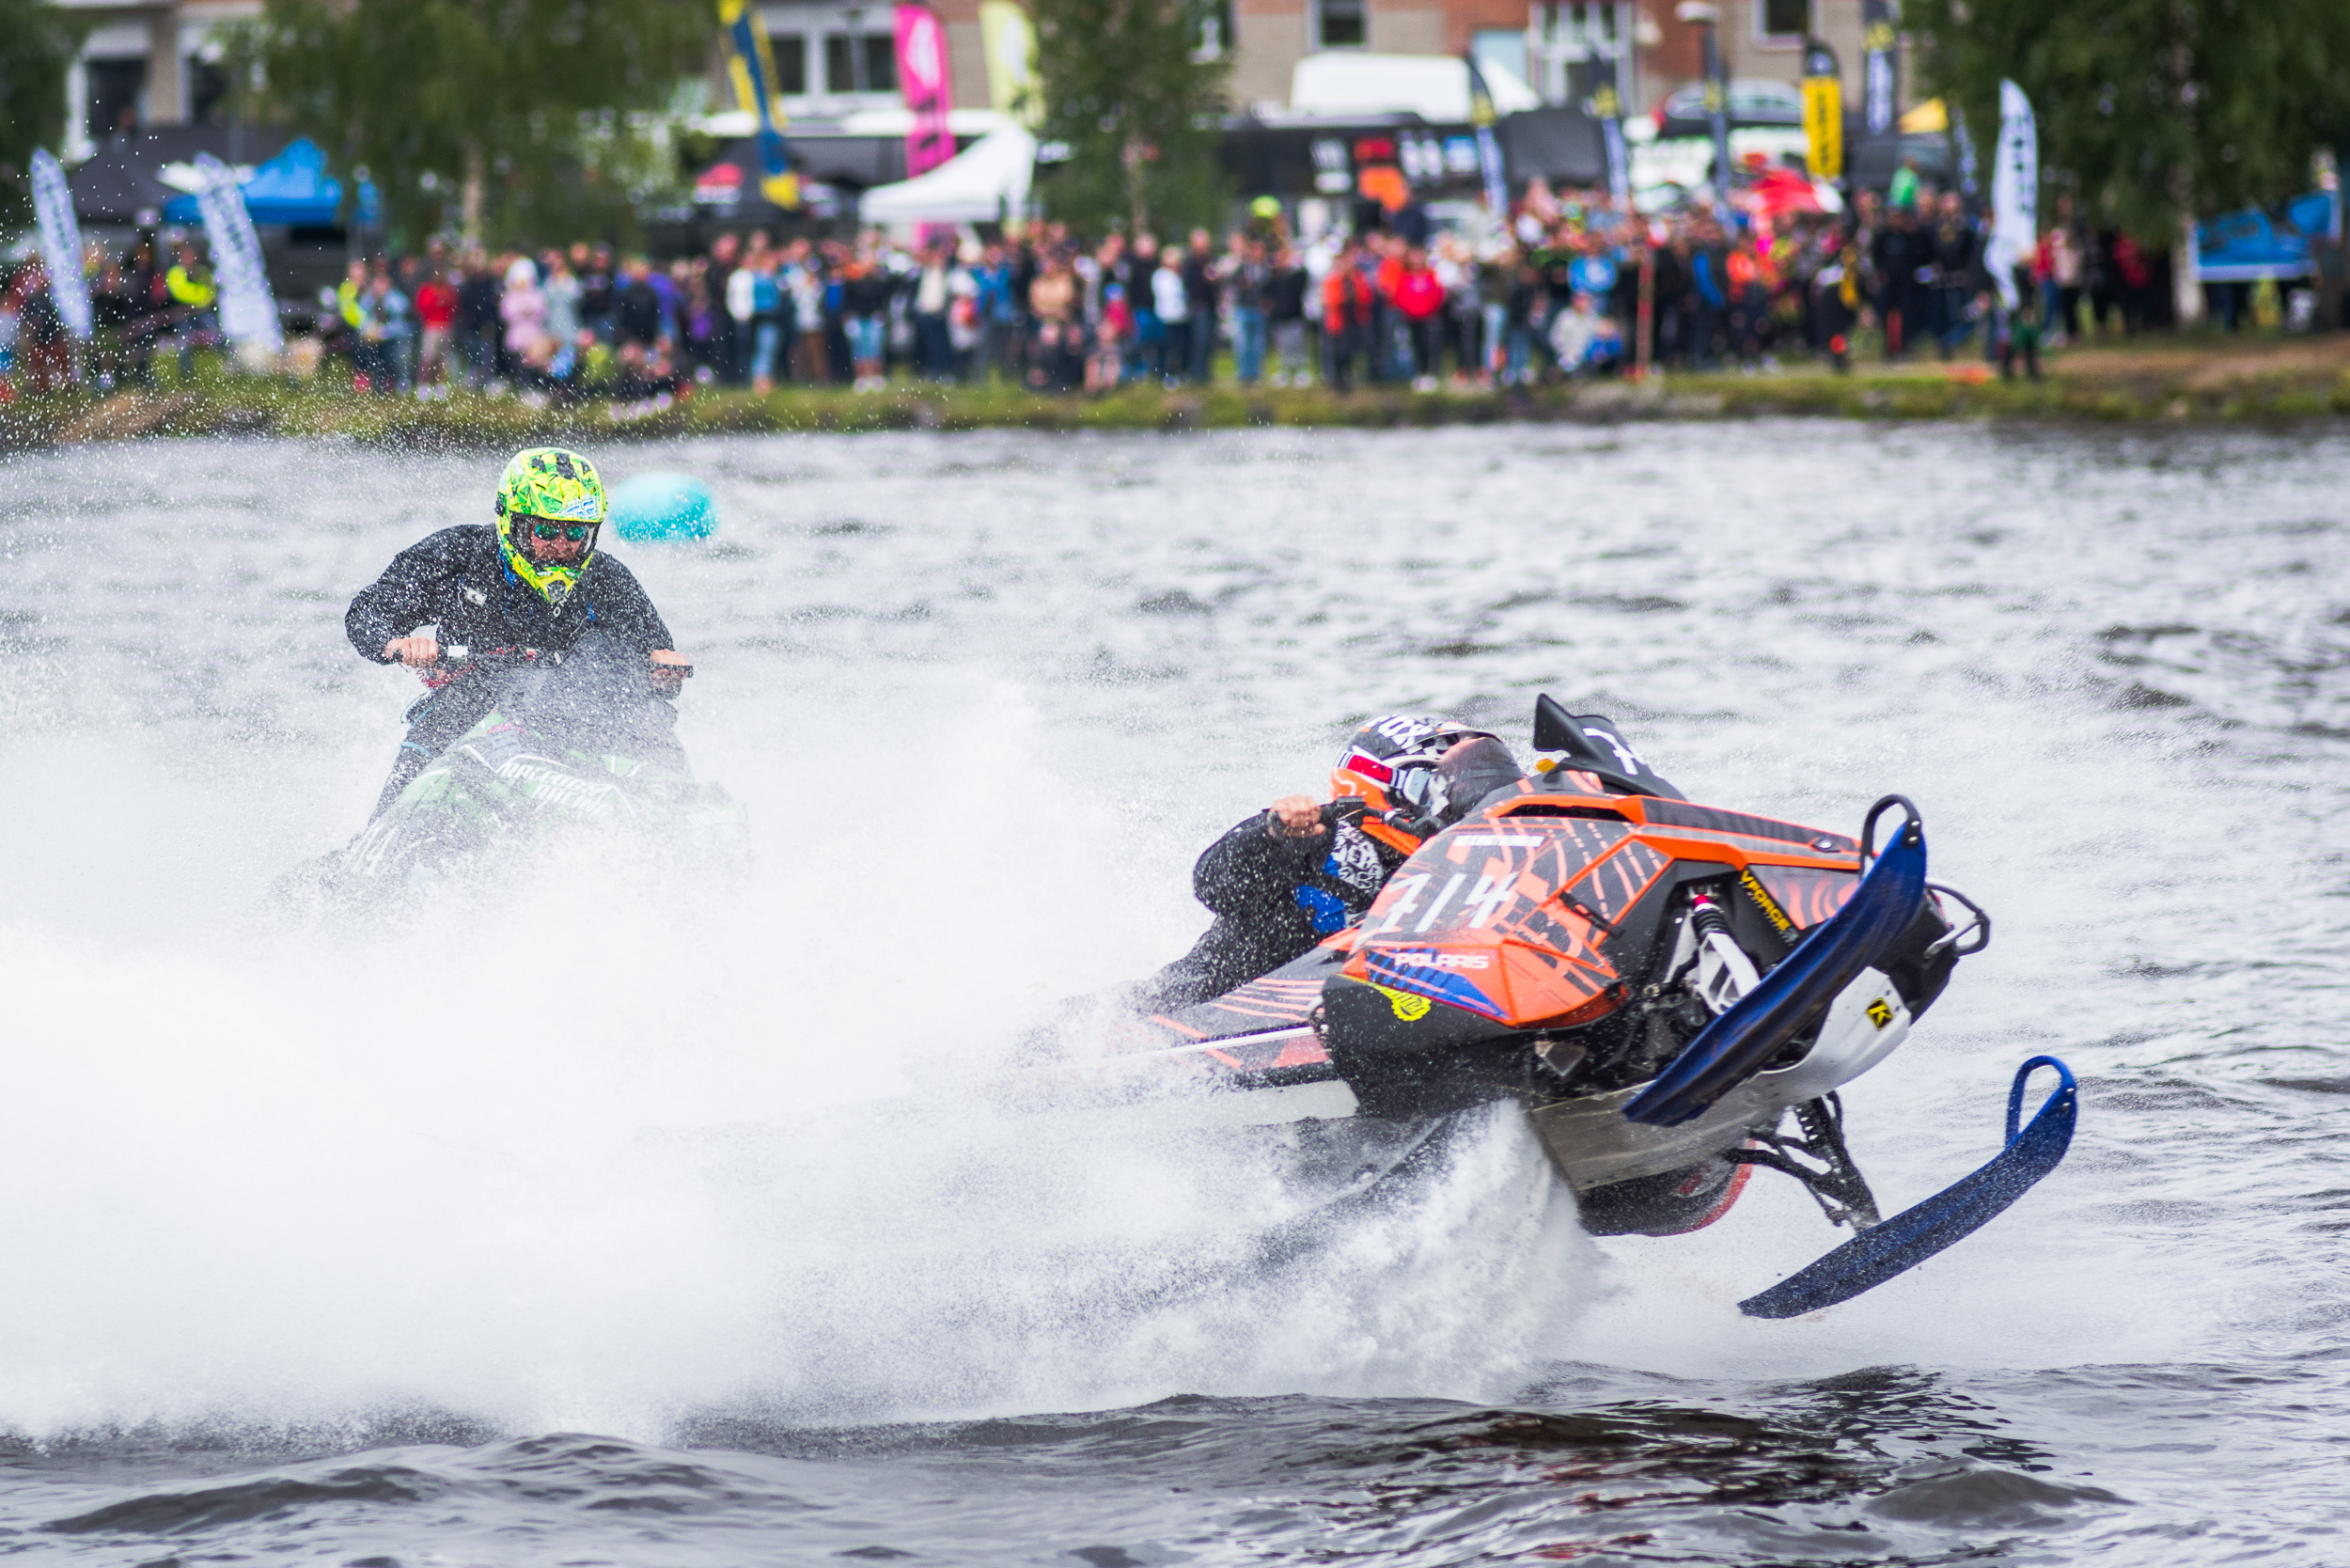 Boden Alive Water X European Watercross Championship 2017